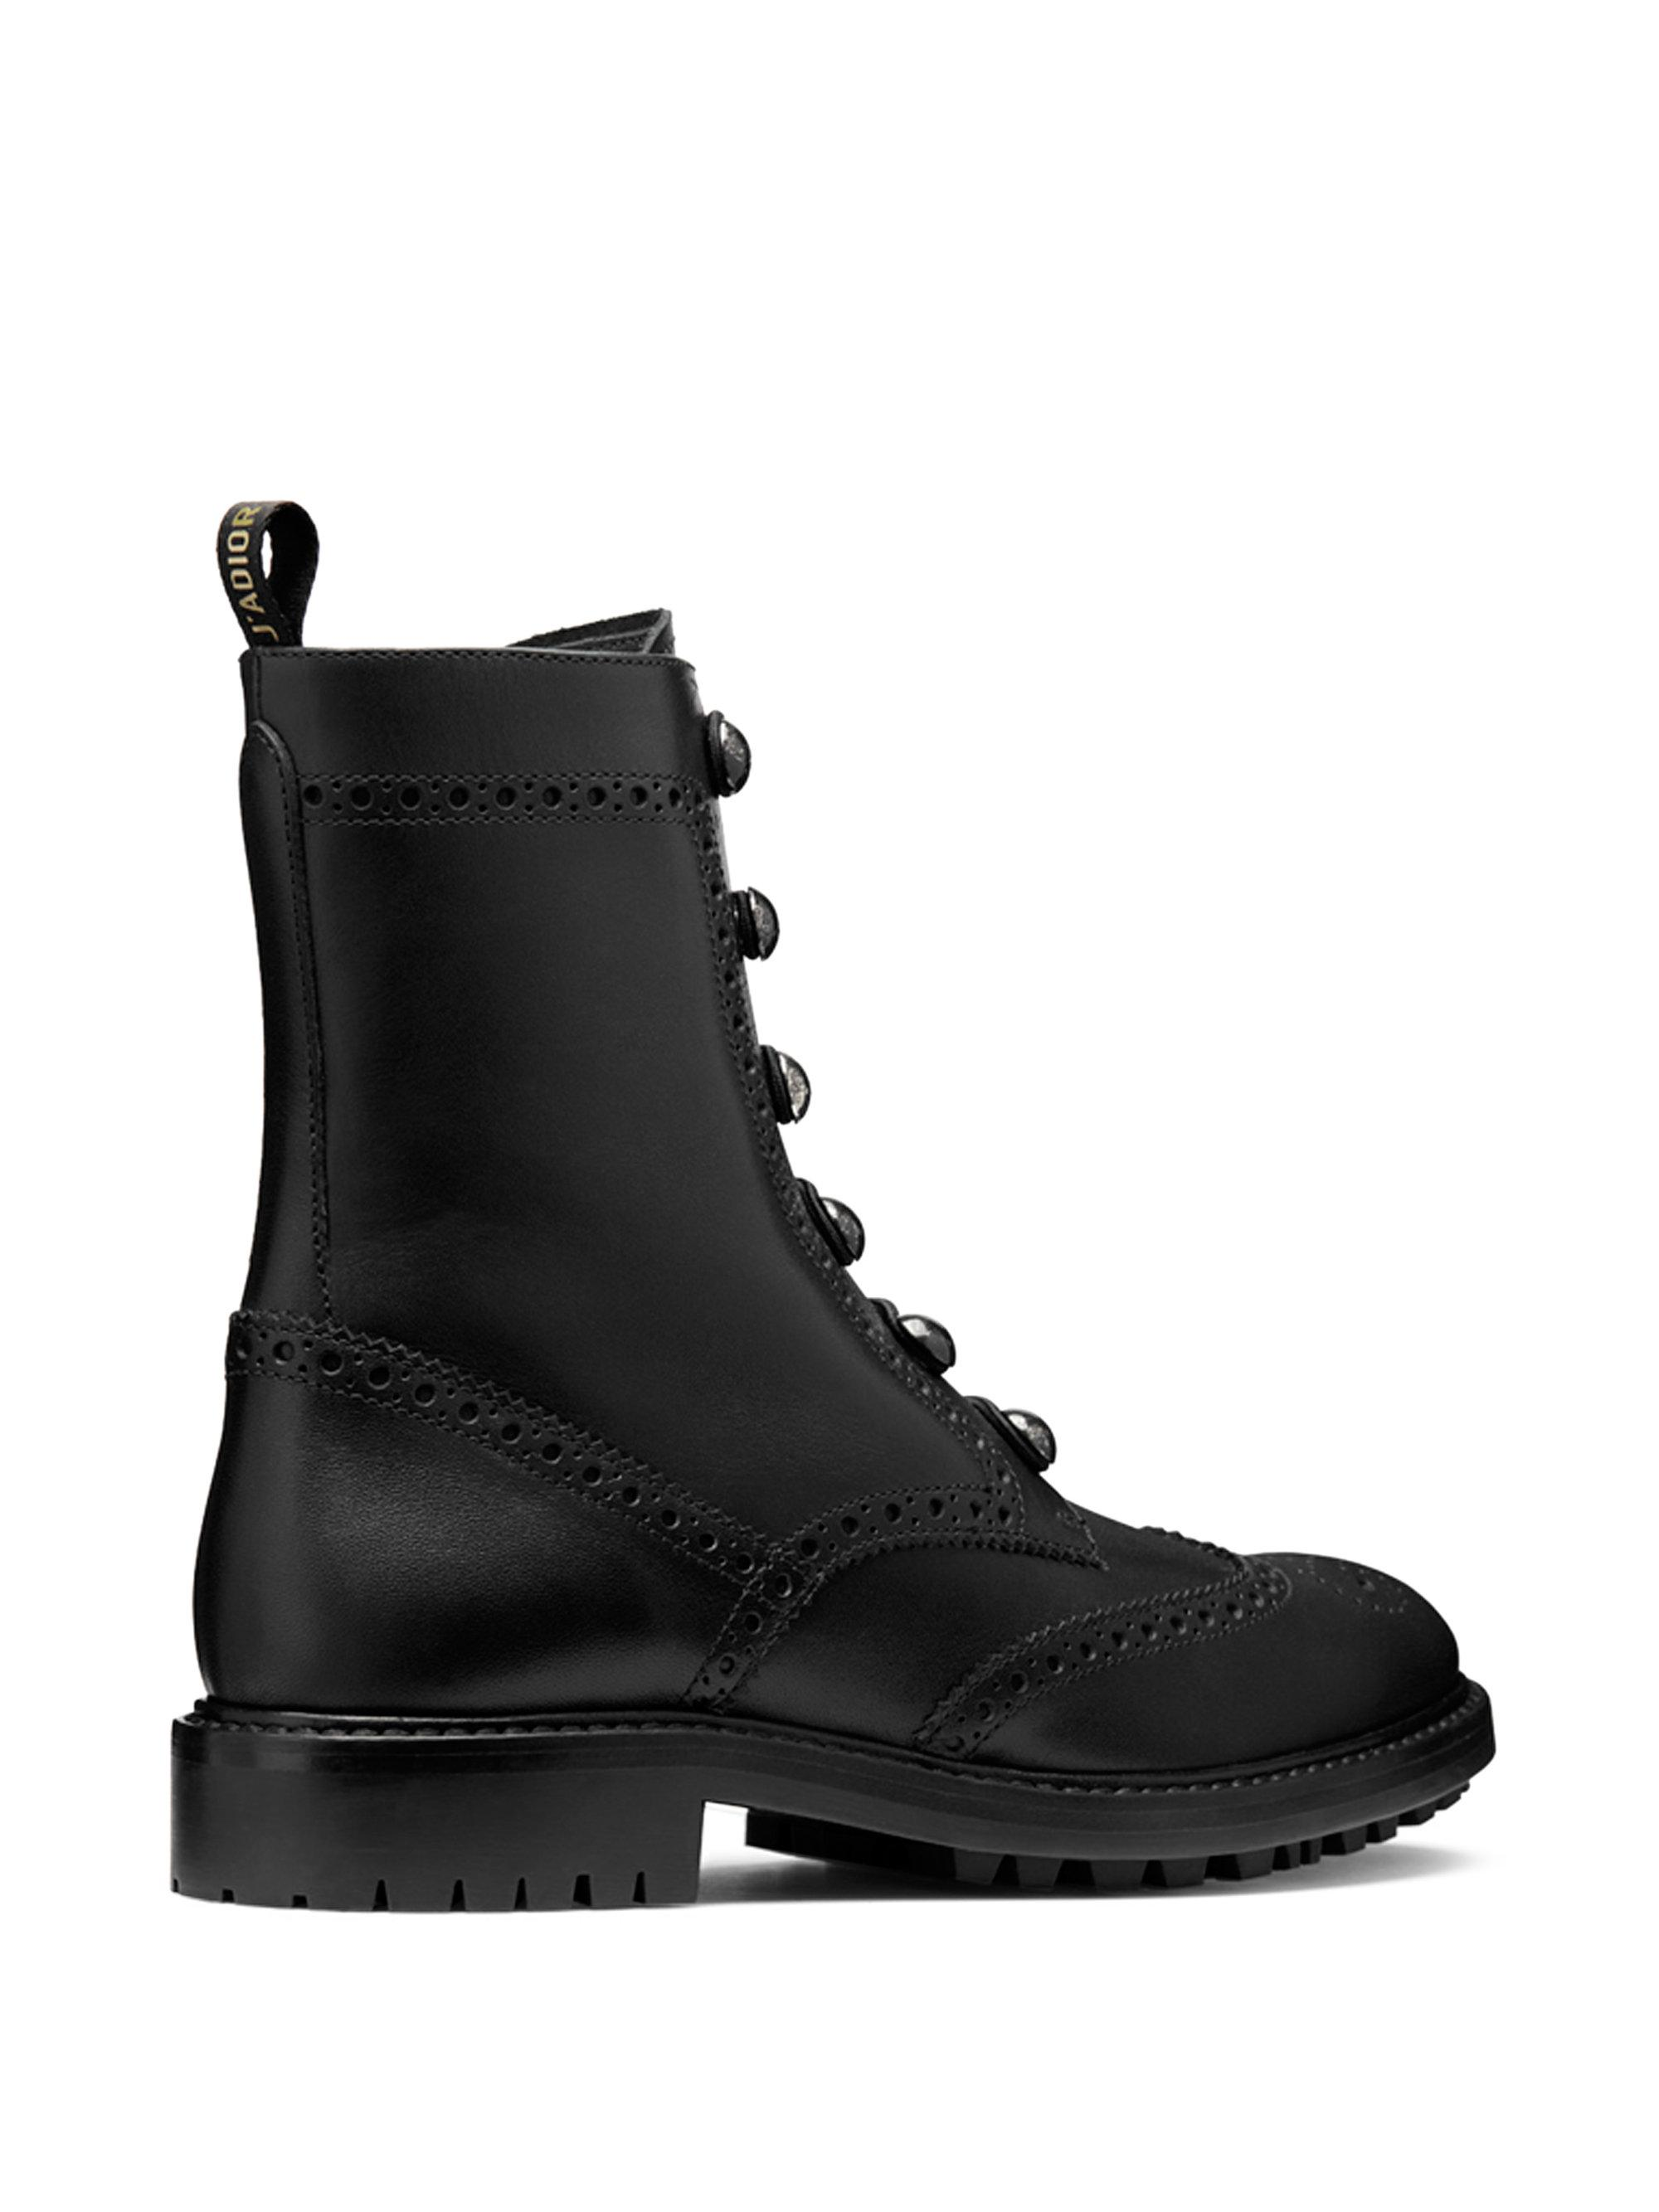 e015c9ee685 Dior Unit Low Boot in Black - Lyst